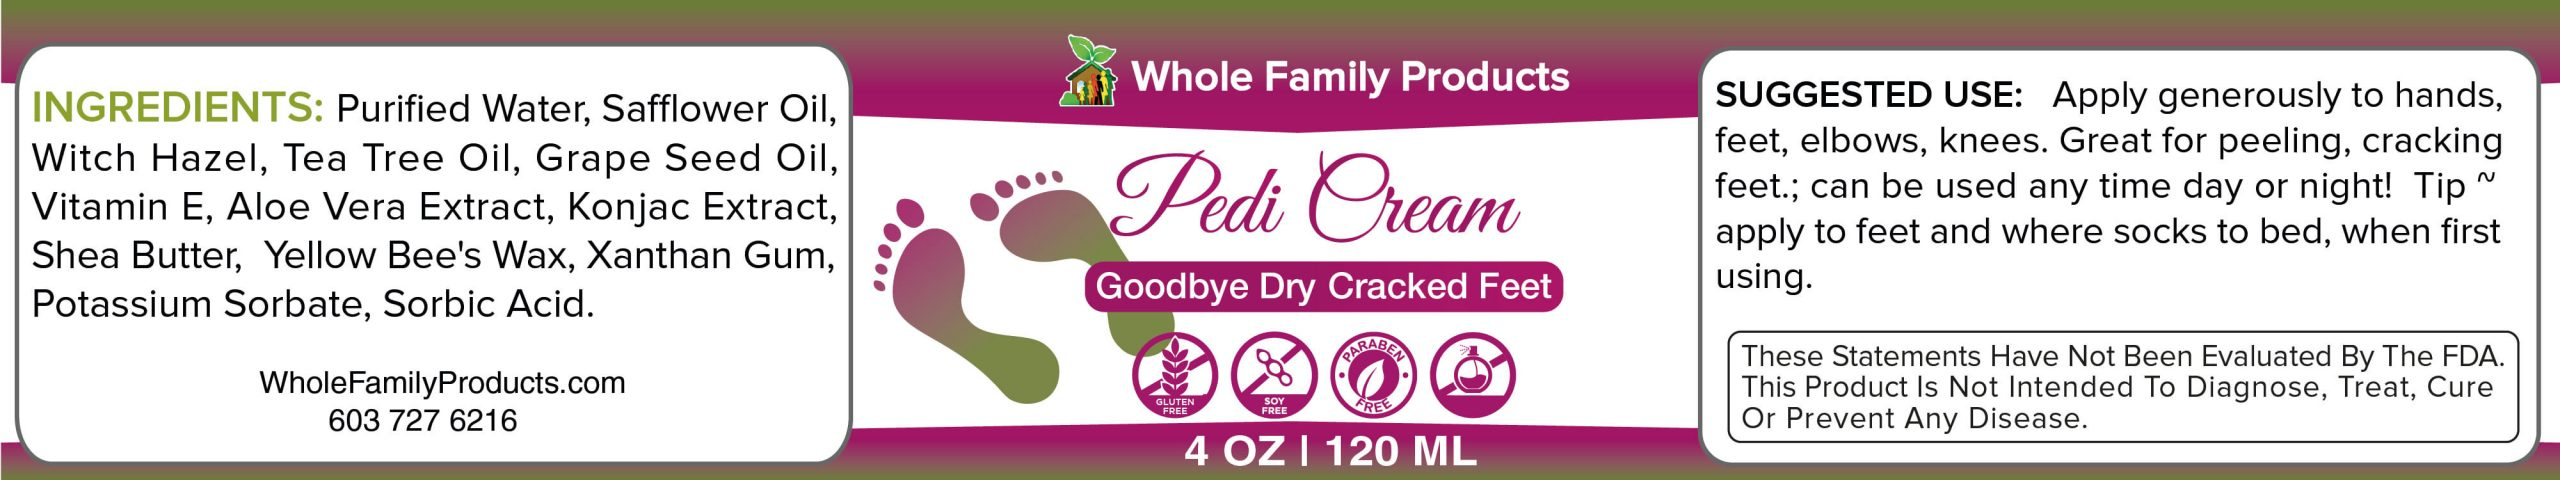 Pedi Cream Best Diabetic Foot Care Label